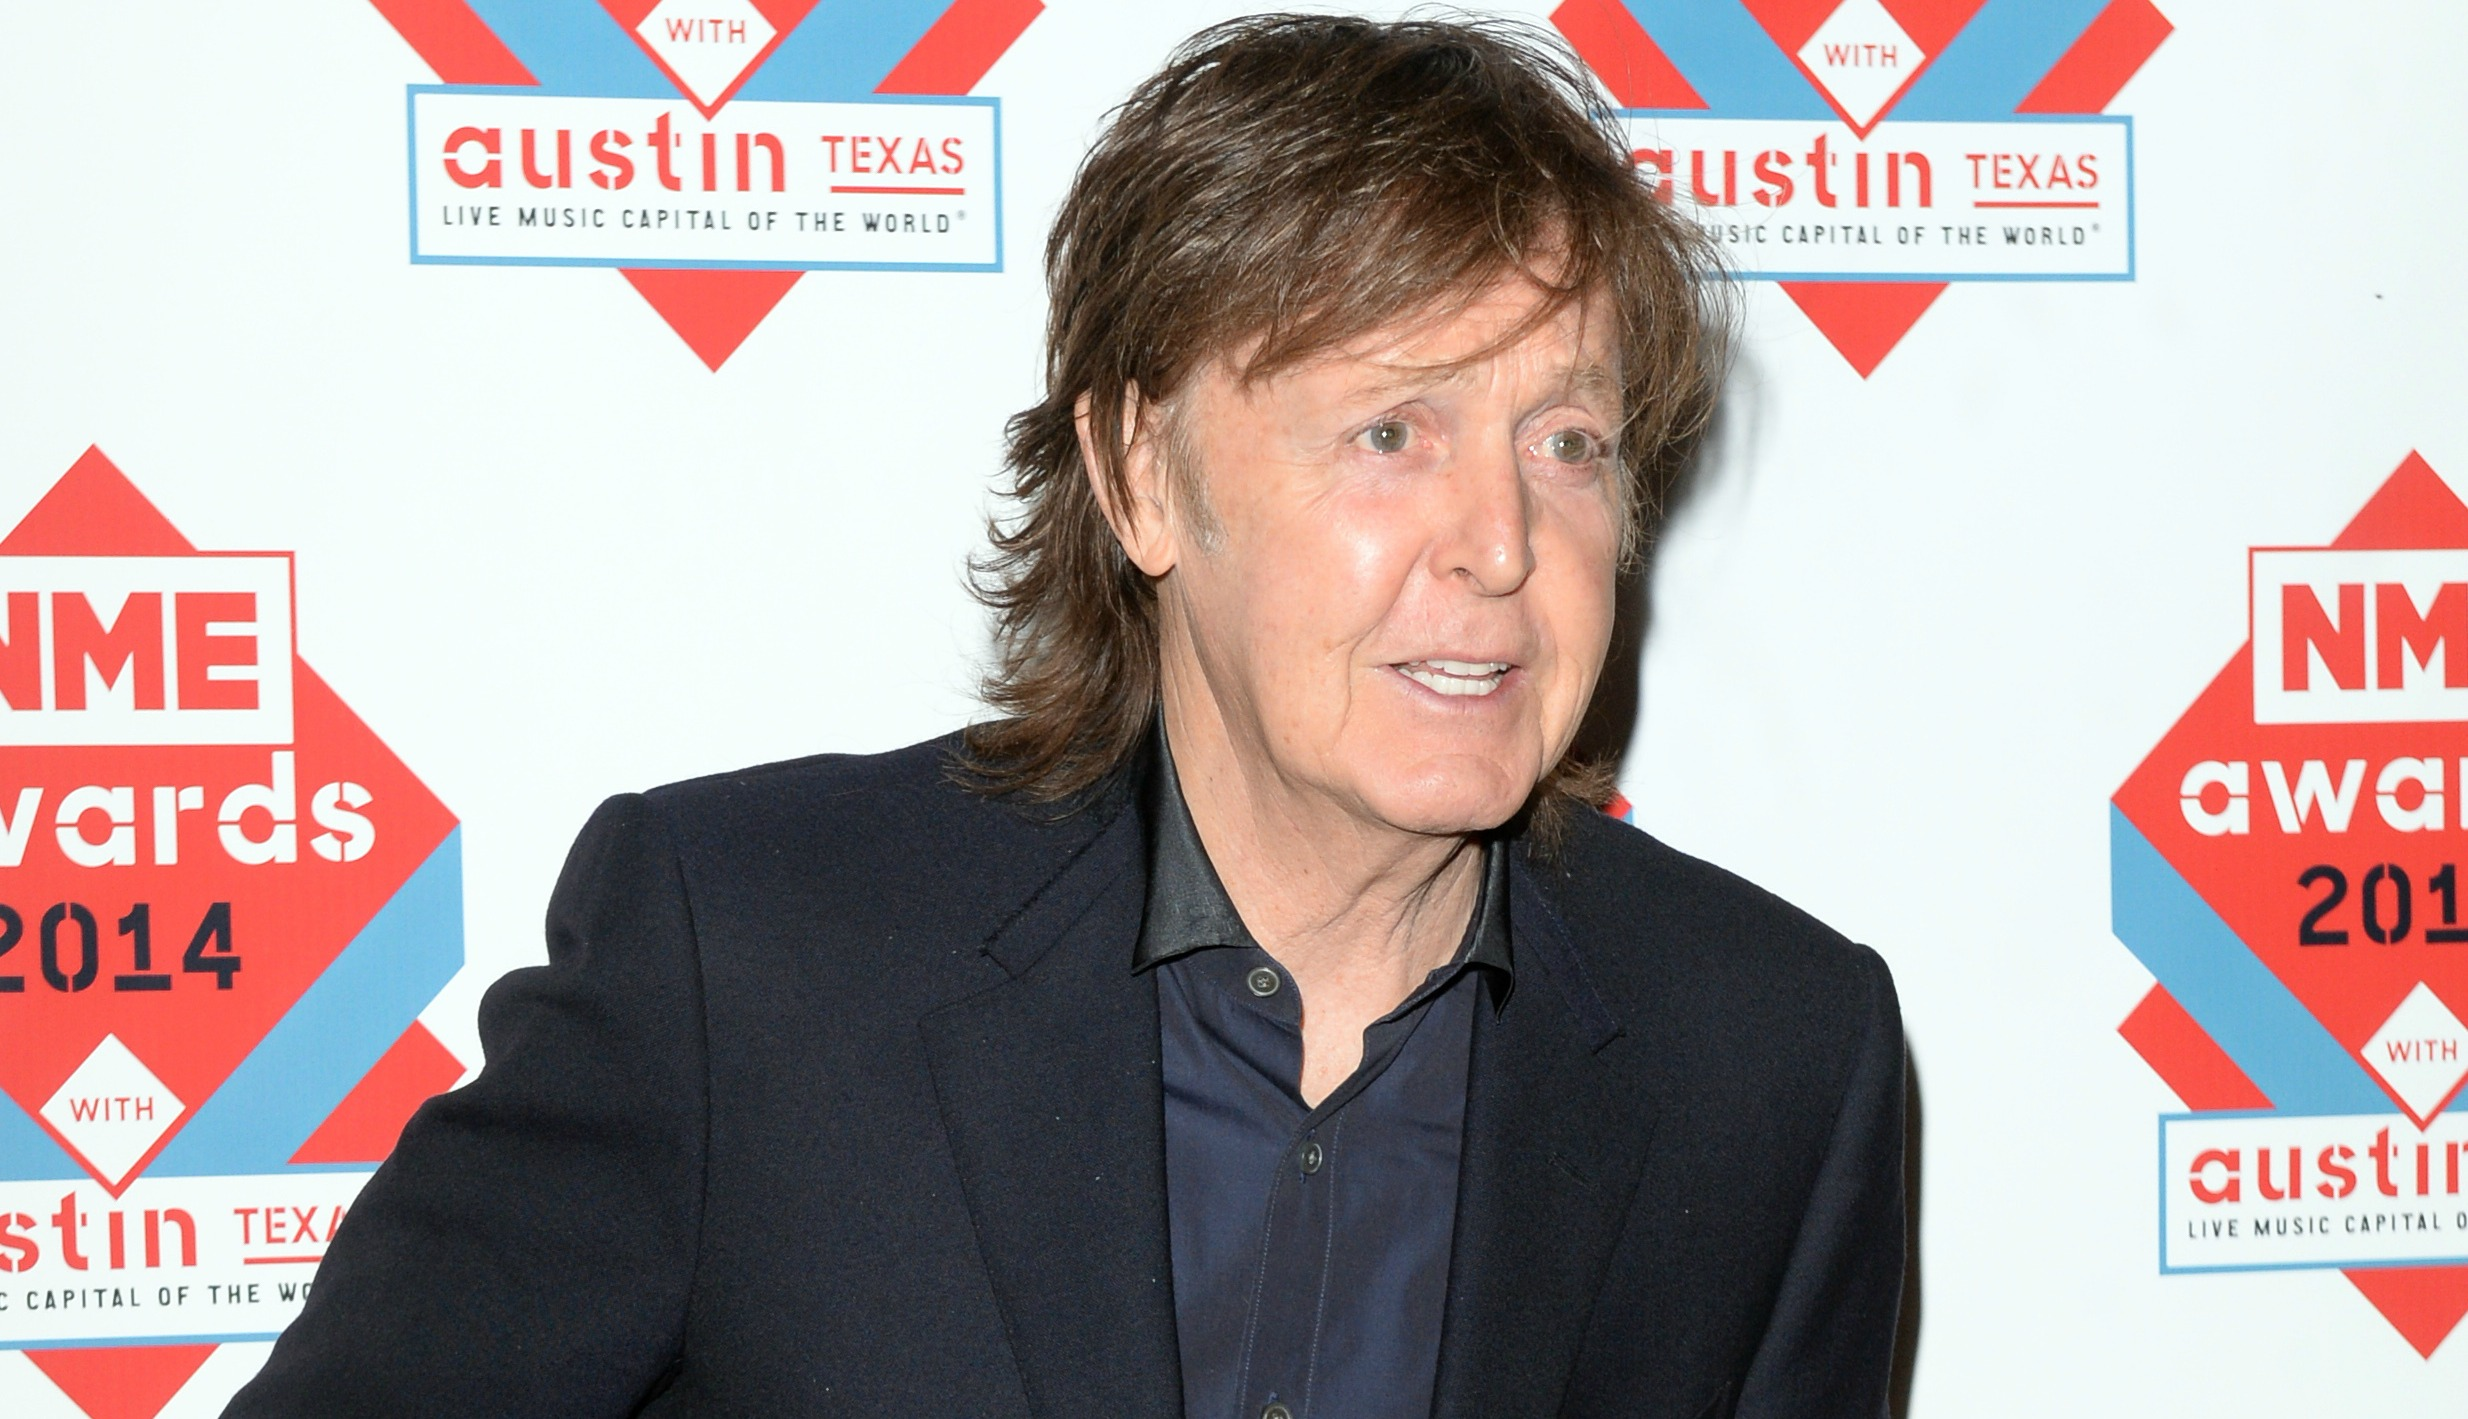 Sir Paul McCartney's brother reveals that they almost drowned as kids